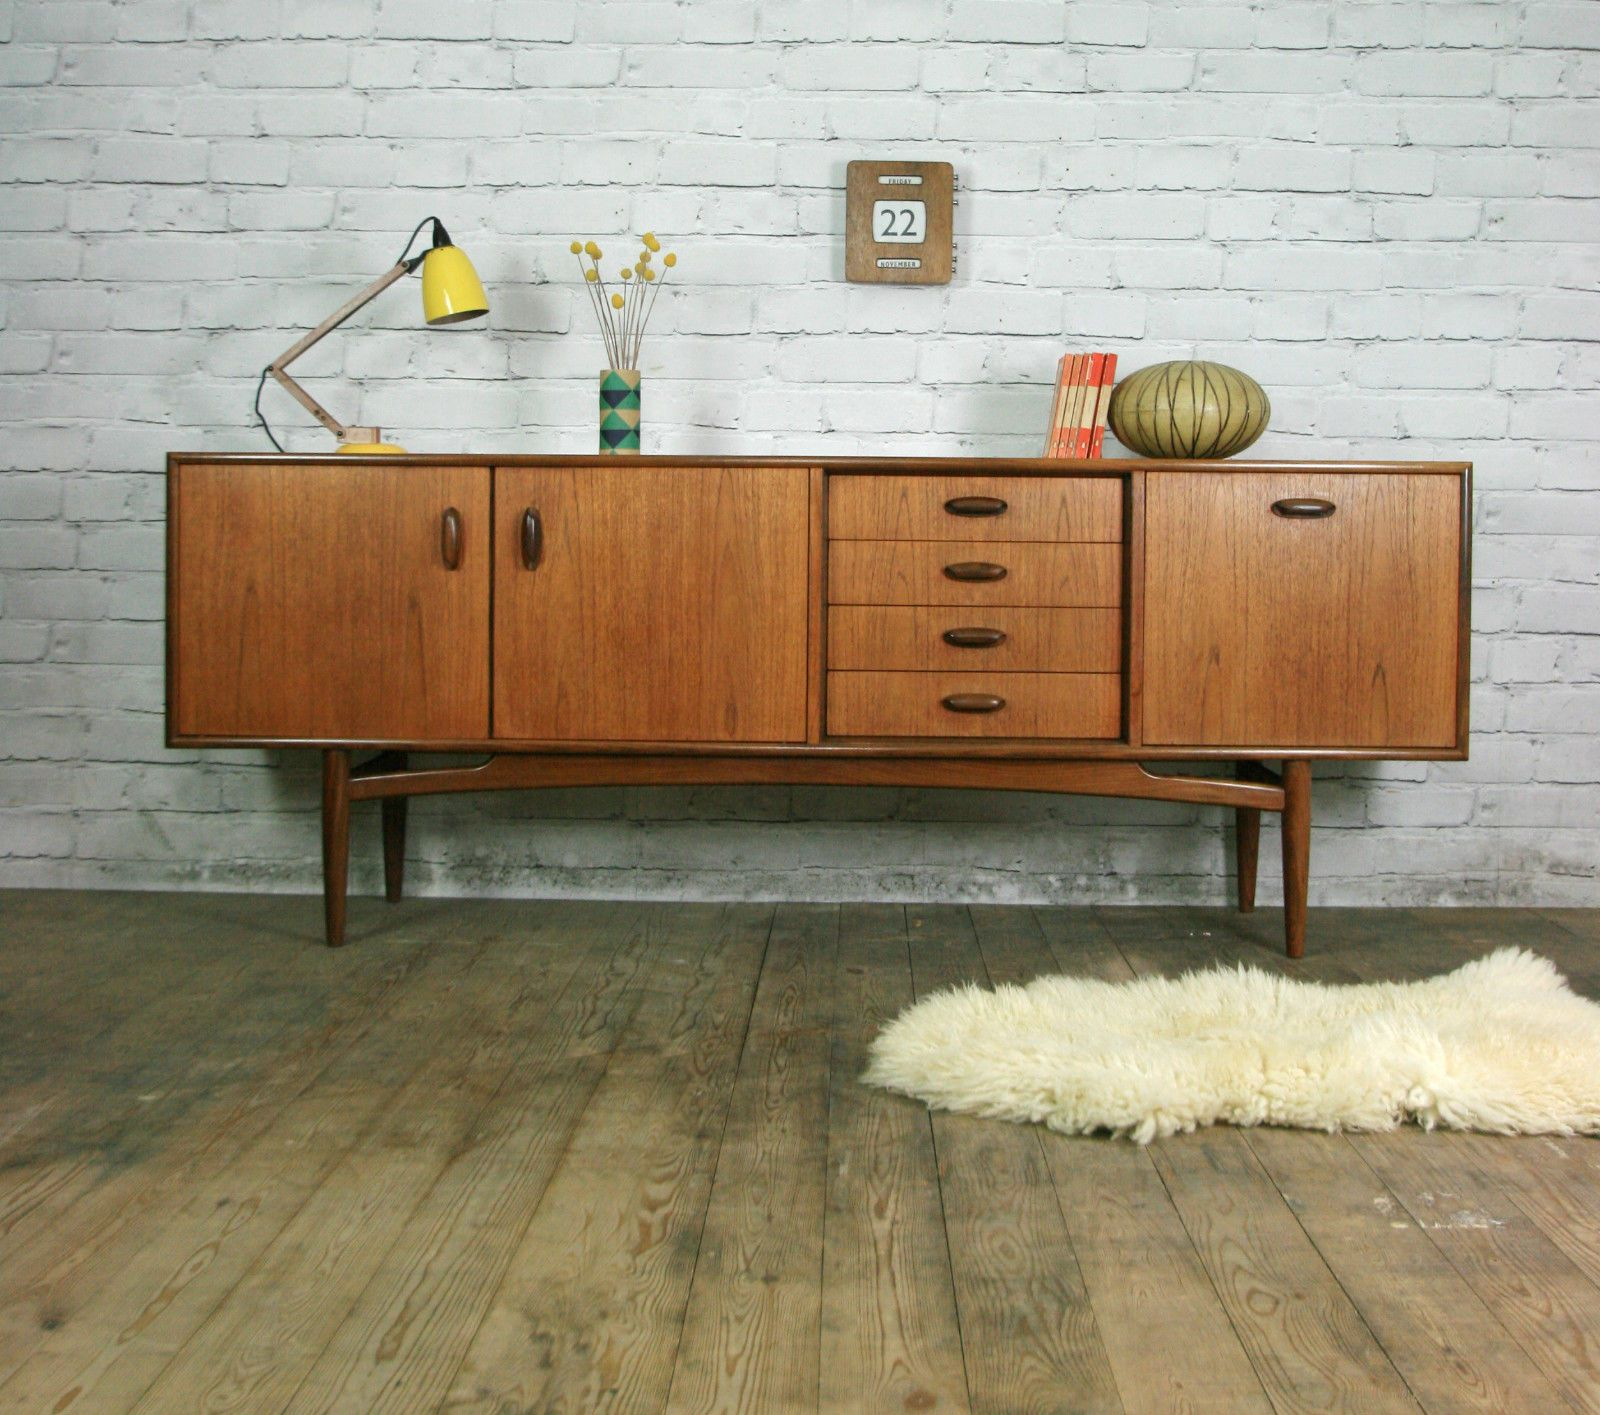 g plan retro vintage teak mid century sideboard eames era 1950s 60s retro vintage teak and 1950s. Black Bedroom Furniture Sets. Home Design Ideas